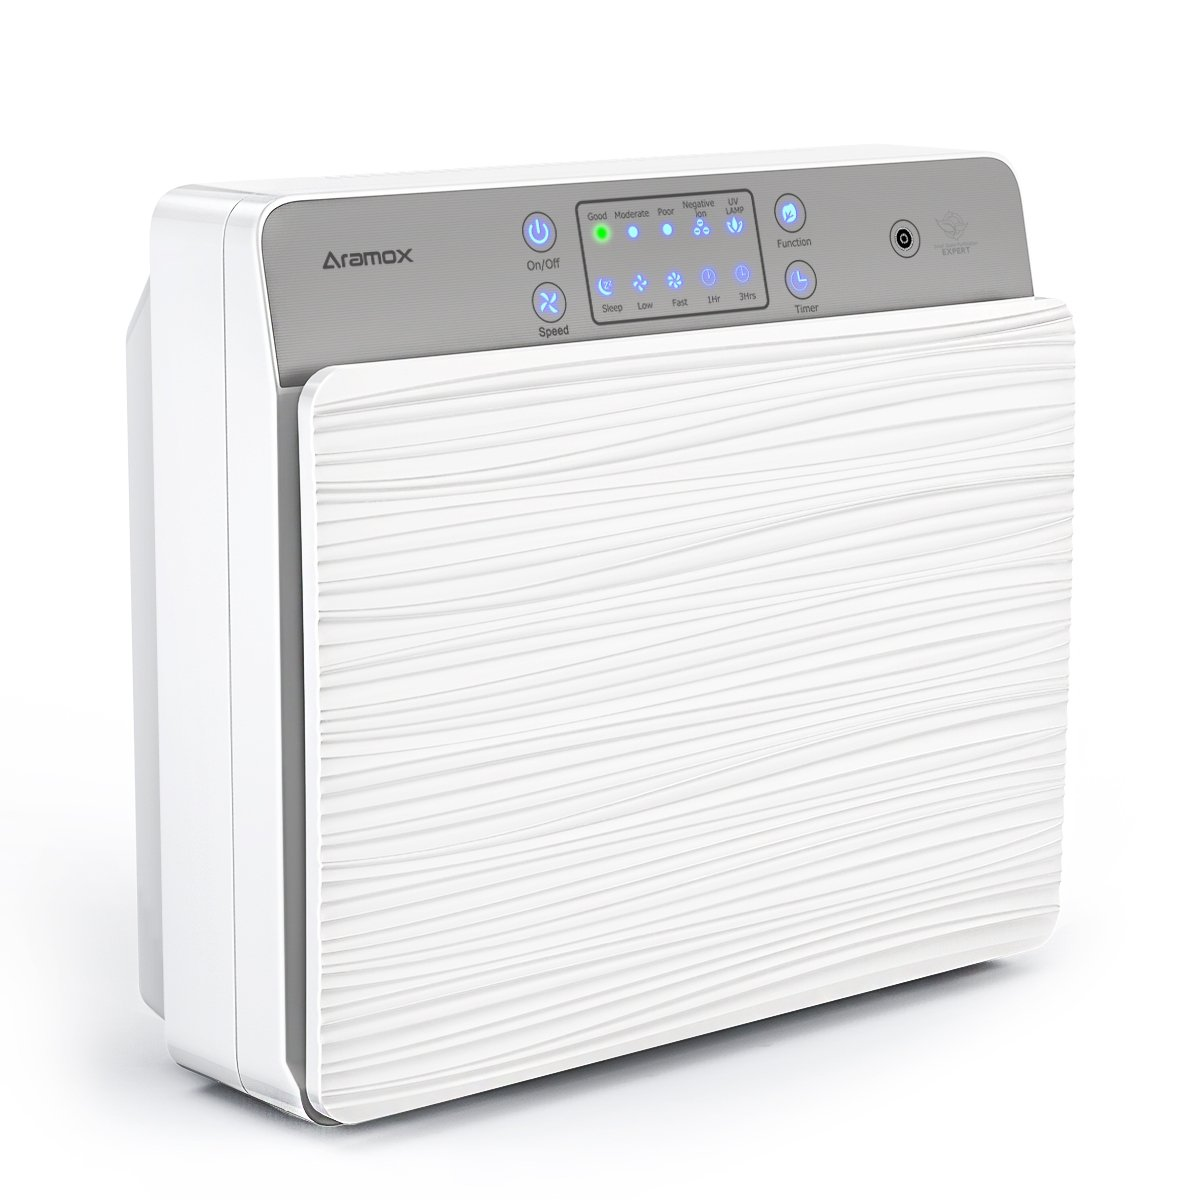 Dehumidifier Ultra Quiet Compact Portable Electric Dehumidifier Home Bedroom Moisture Damp Mould Absorber for Basement Bathroom Kitchen Office Garage Bookcase (500ml) Chiclulu